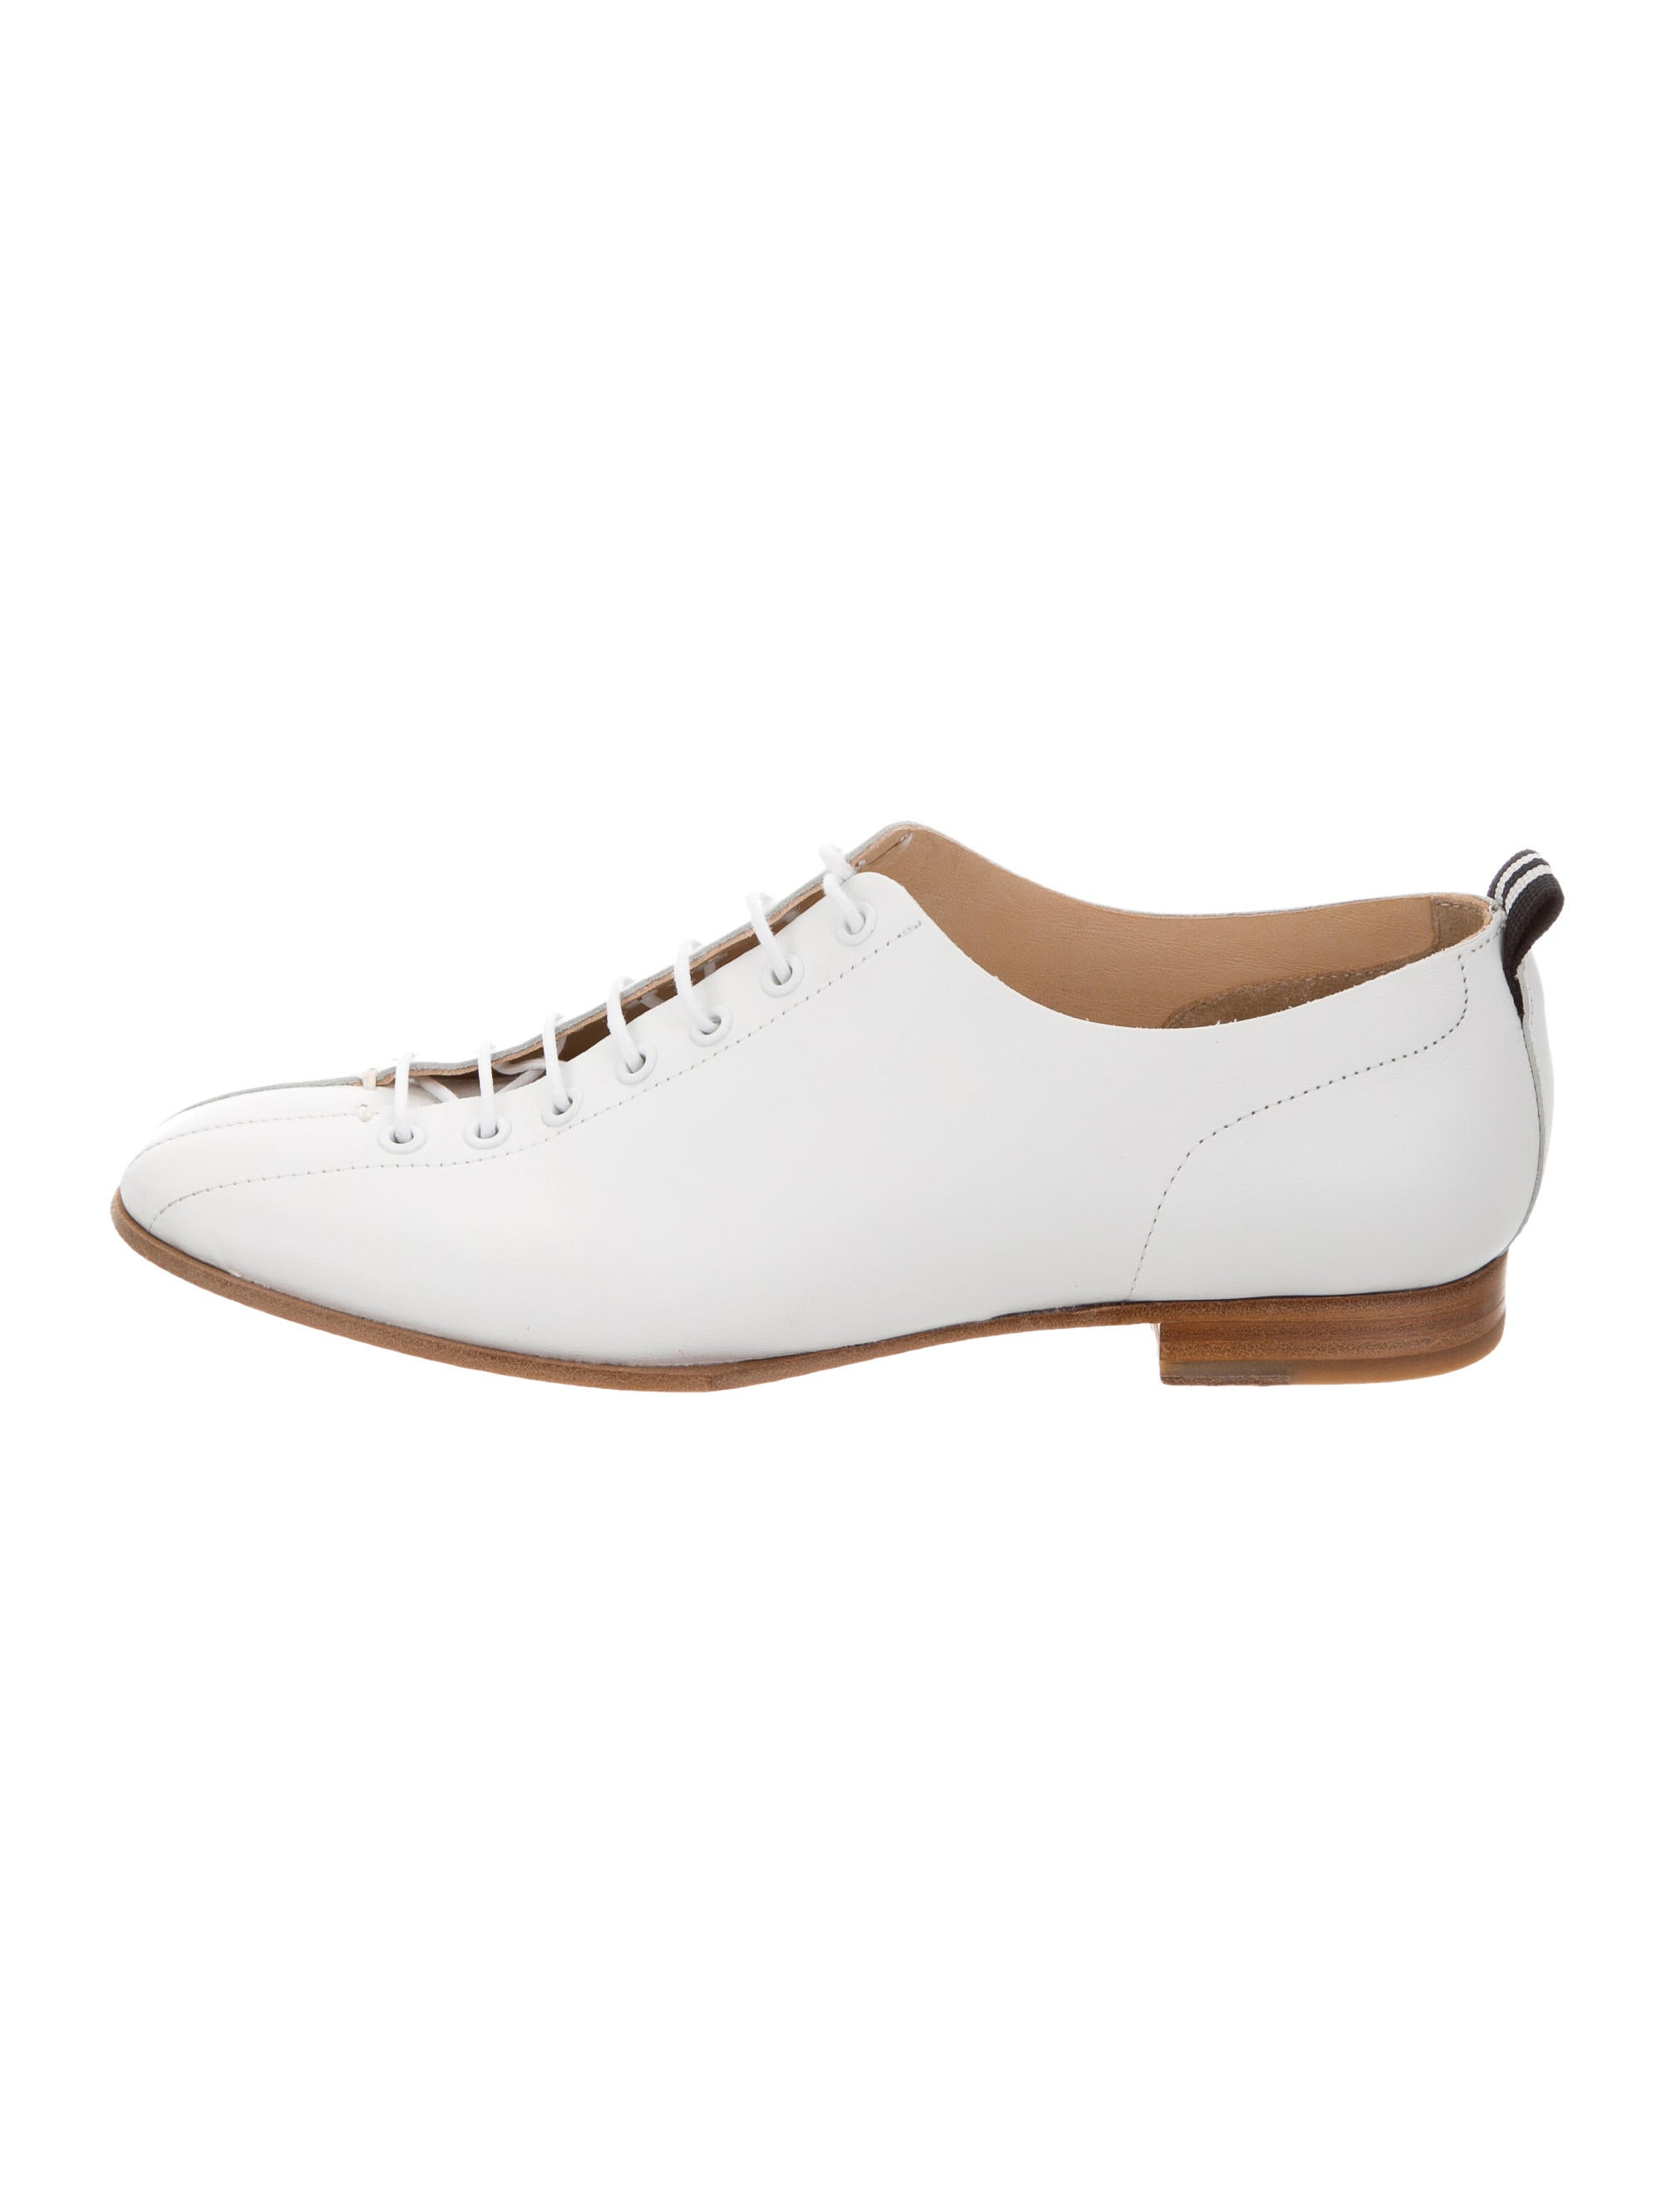 Womens Alley Leather Oxfords Rag & Bone L0OS76o